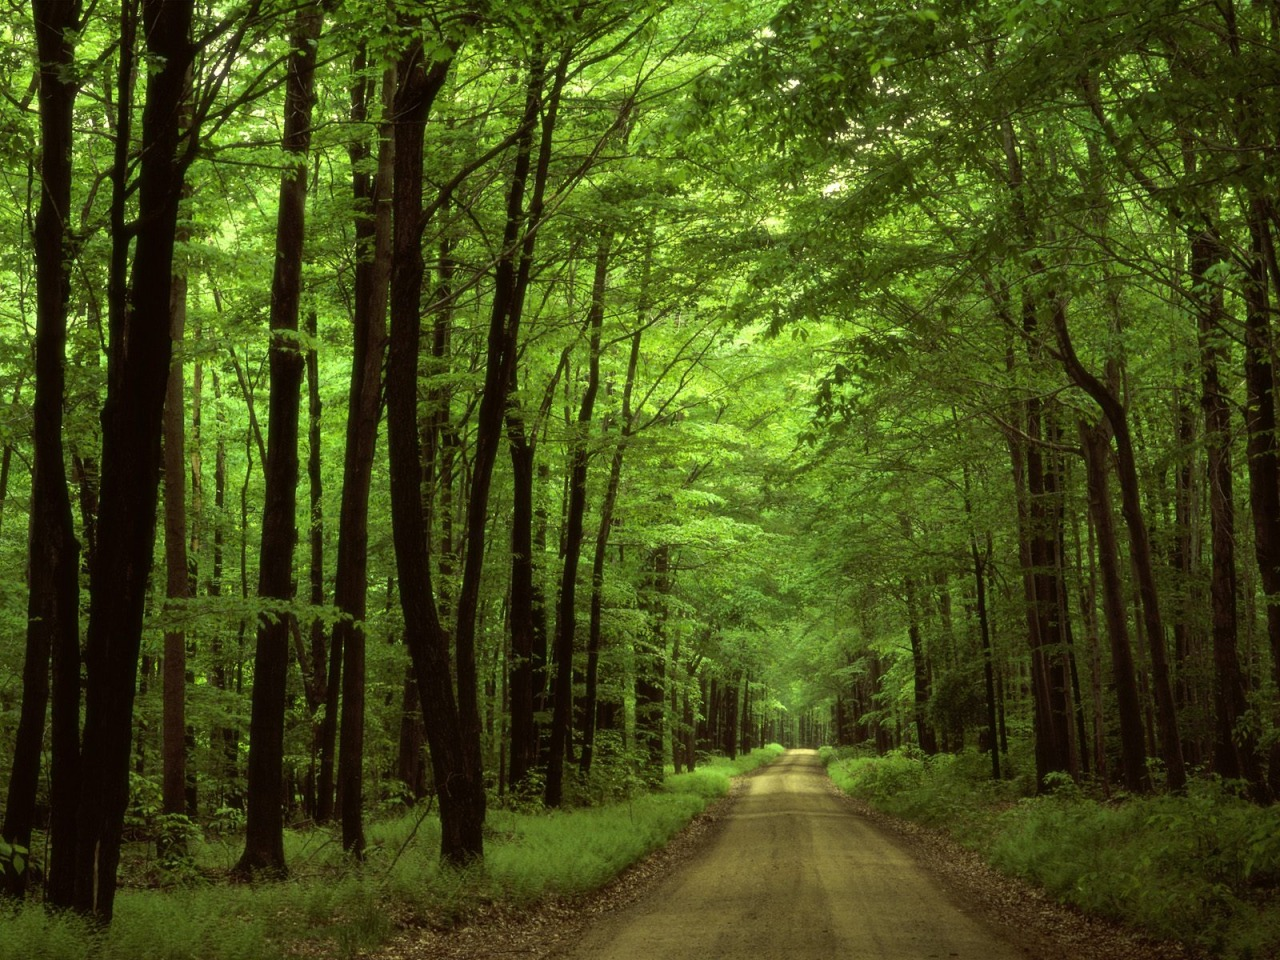 Forest Wall Paper forest road wallpaper landscape nature wallpapers in jpg format